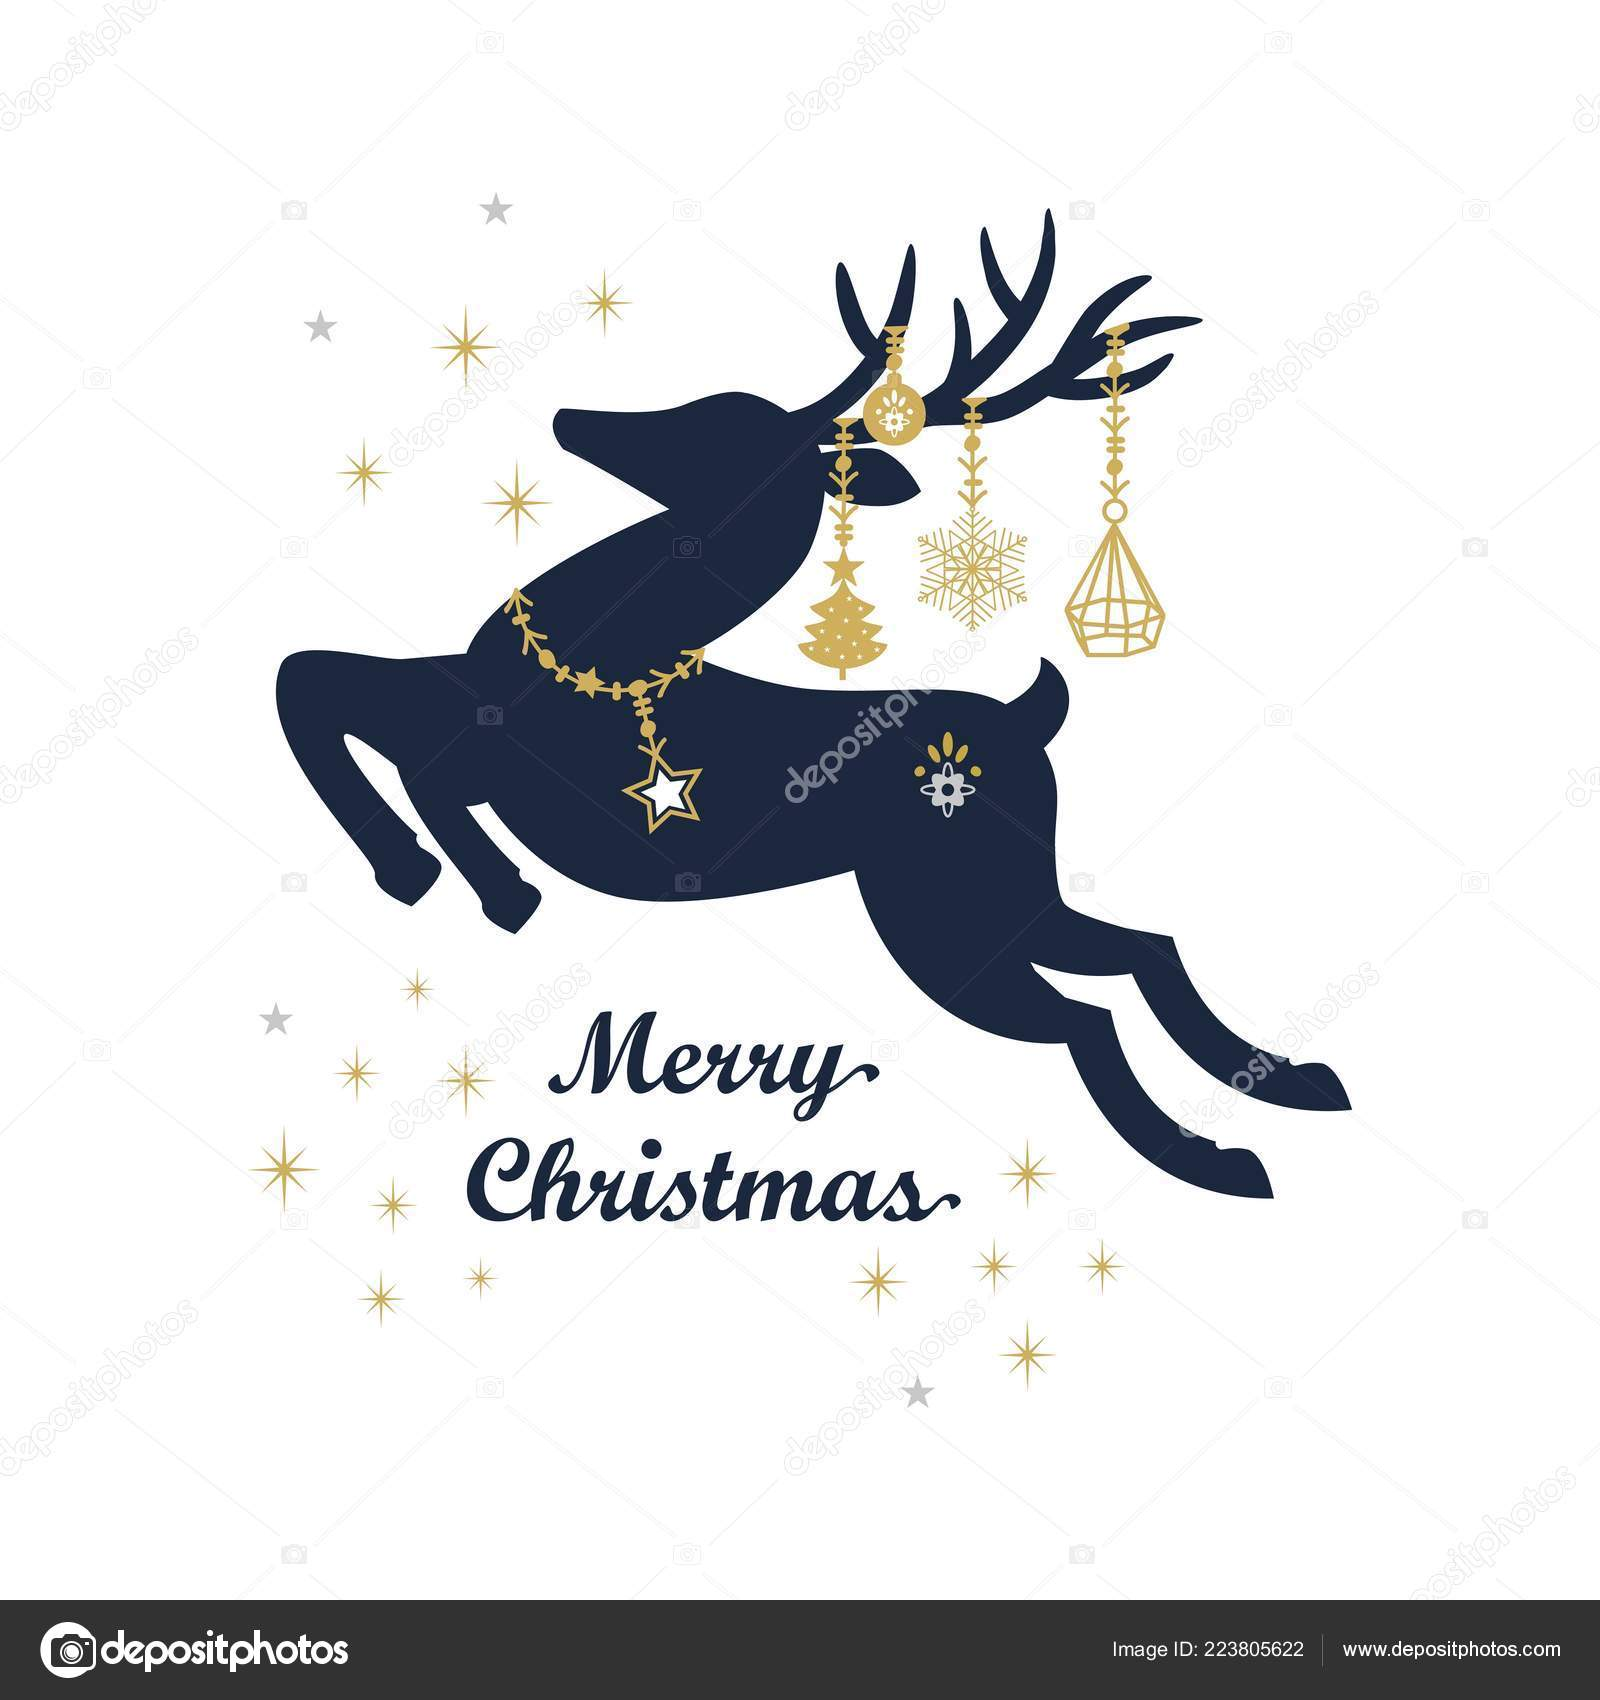 Hanging Christmas Ornaments Silhouette.Abstract Dark Navy Blue Golden Silhouette Jumping Reindeer